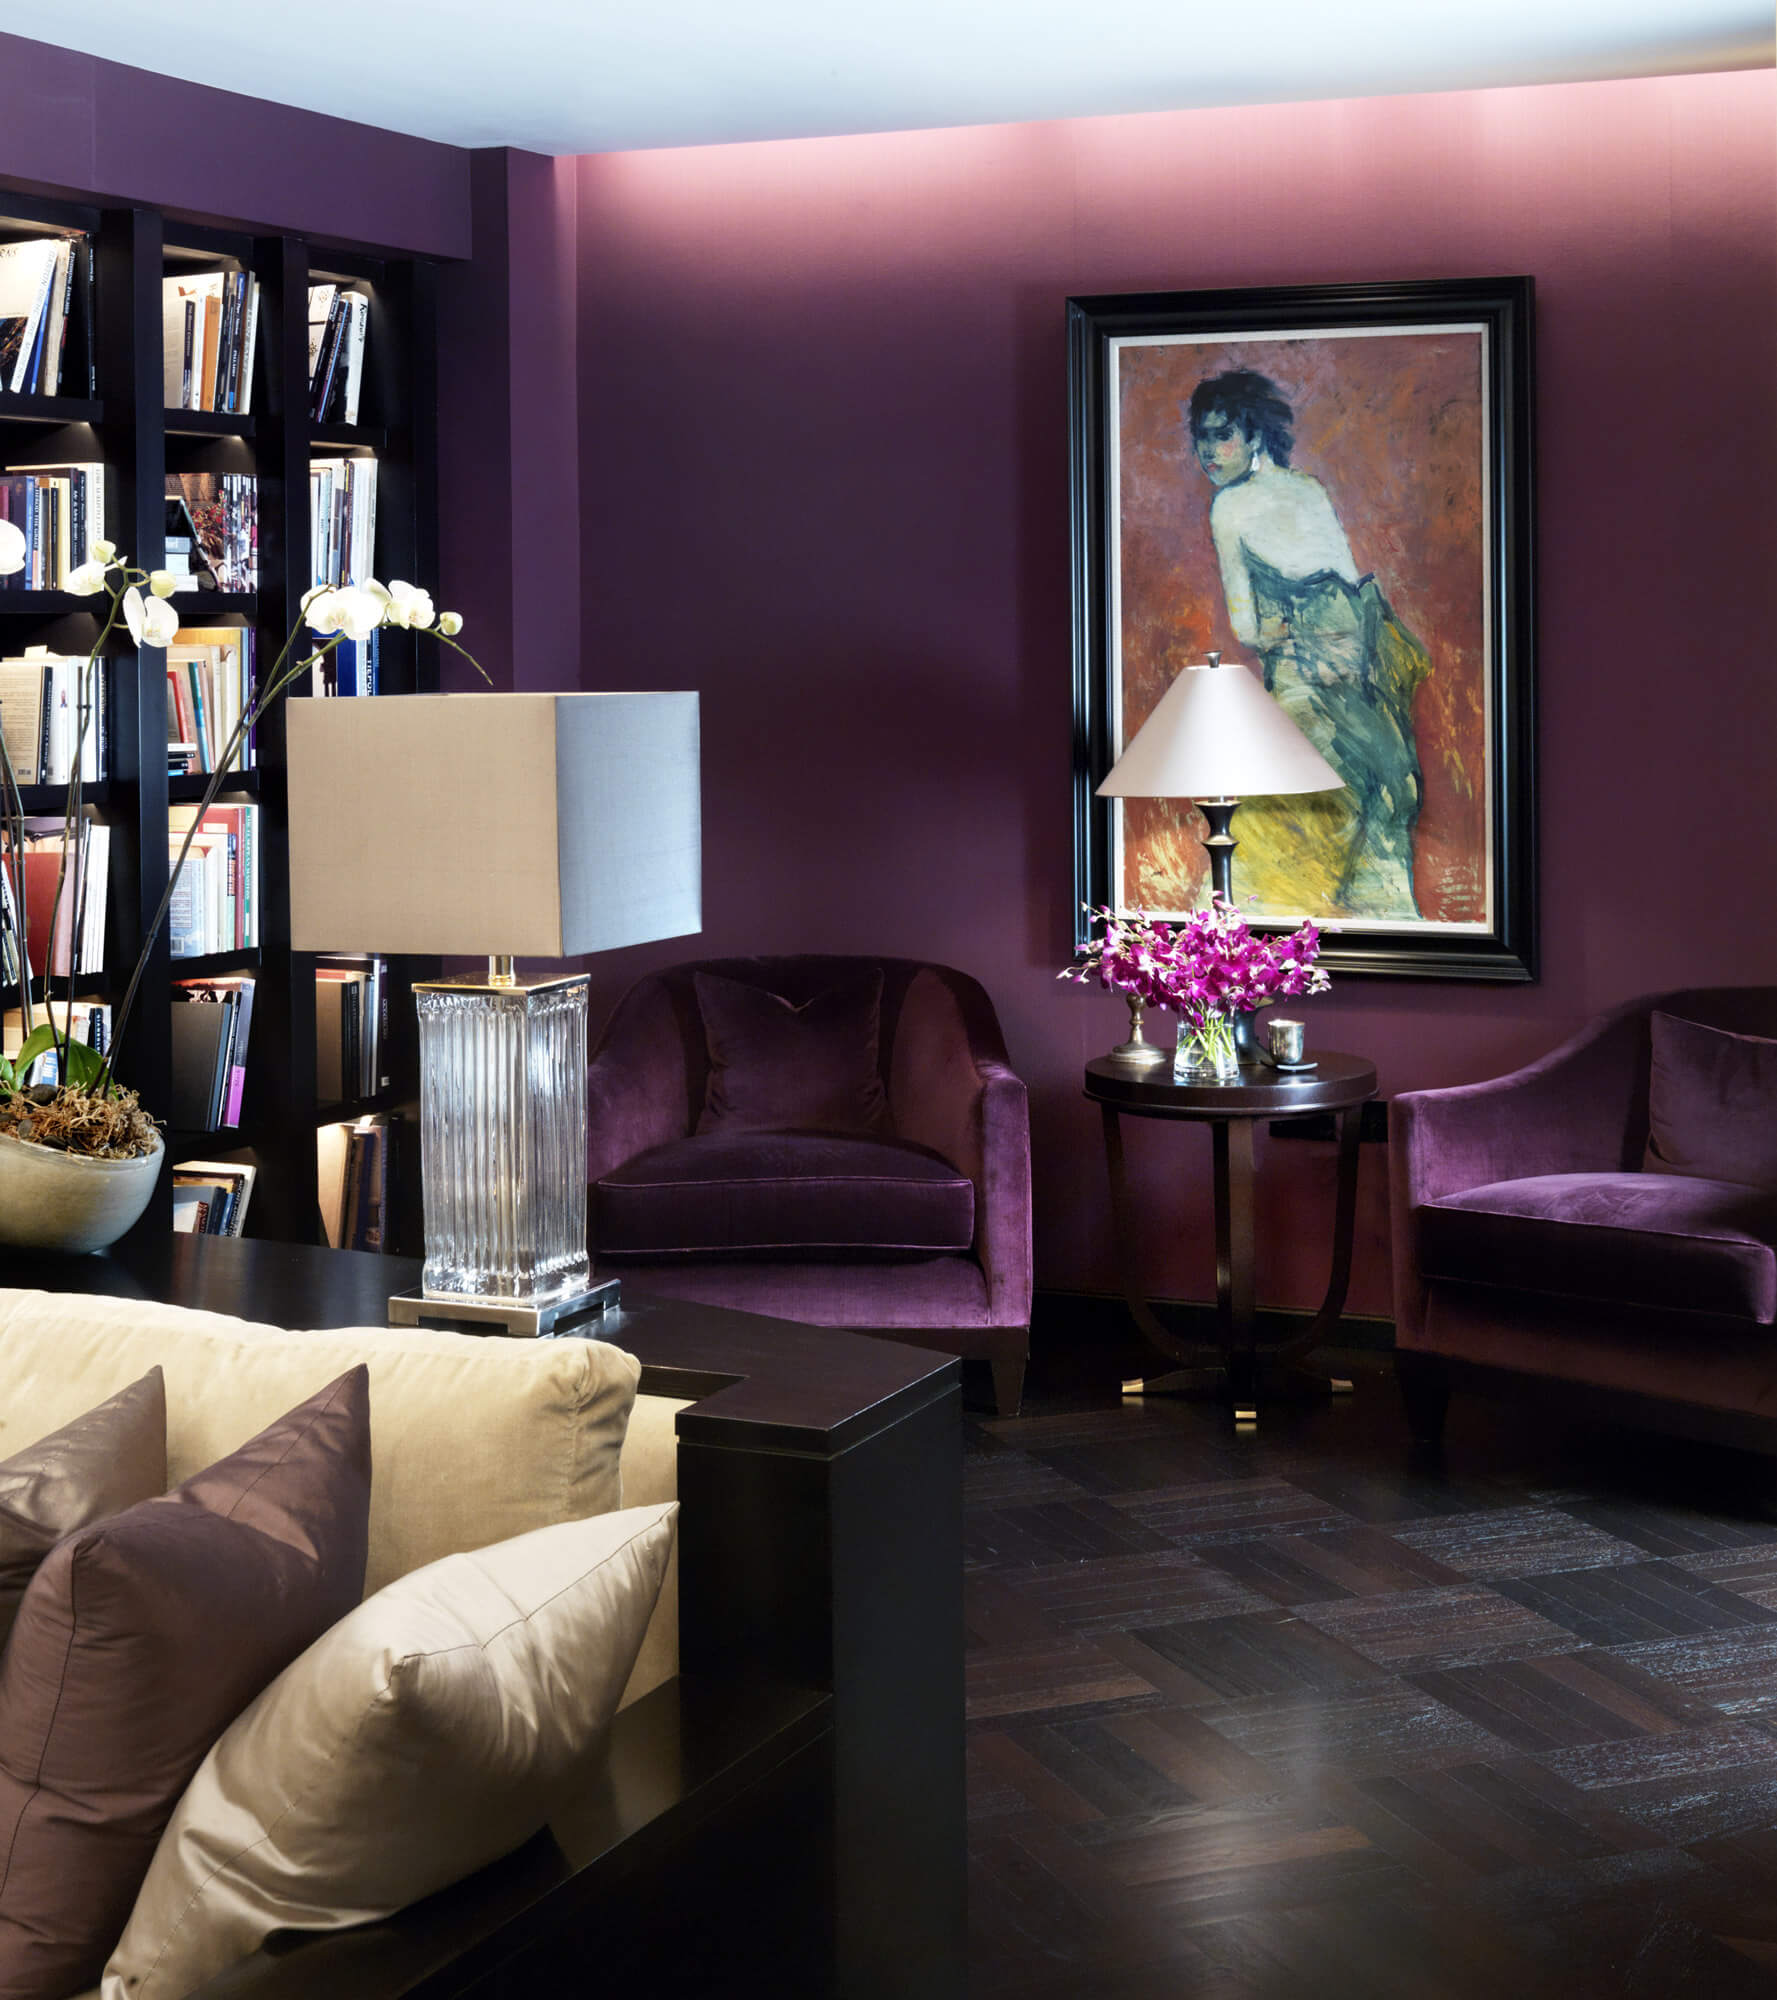 Luxury Living - A Purple living room interior